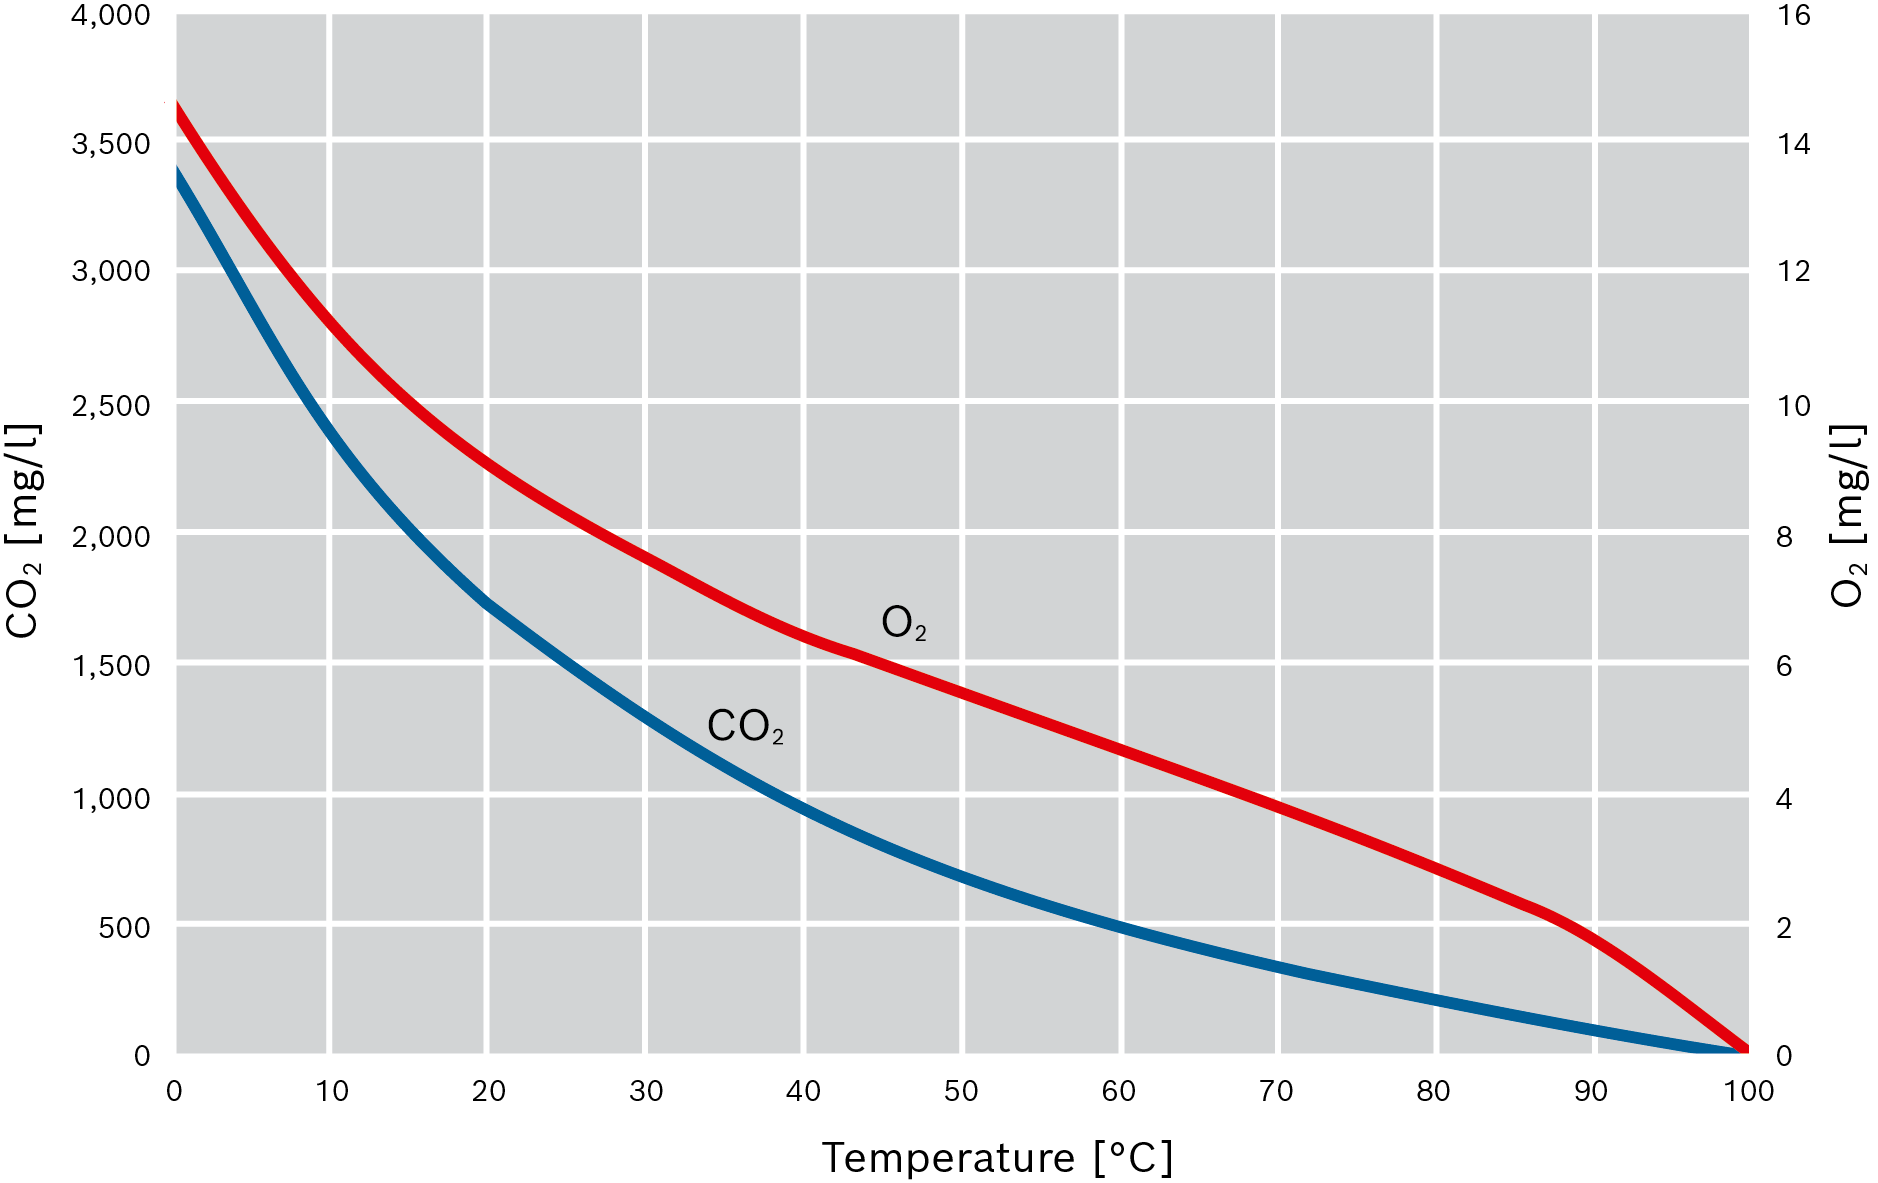 Solubility of oxygen and carbon dioxide in water